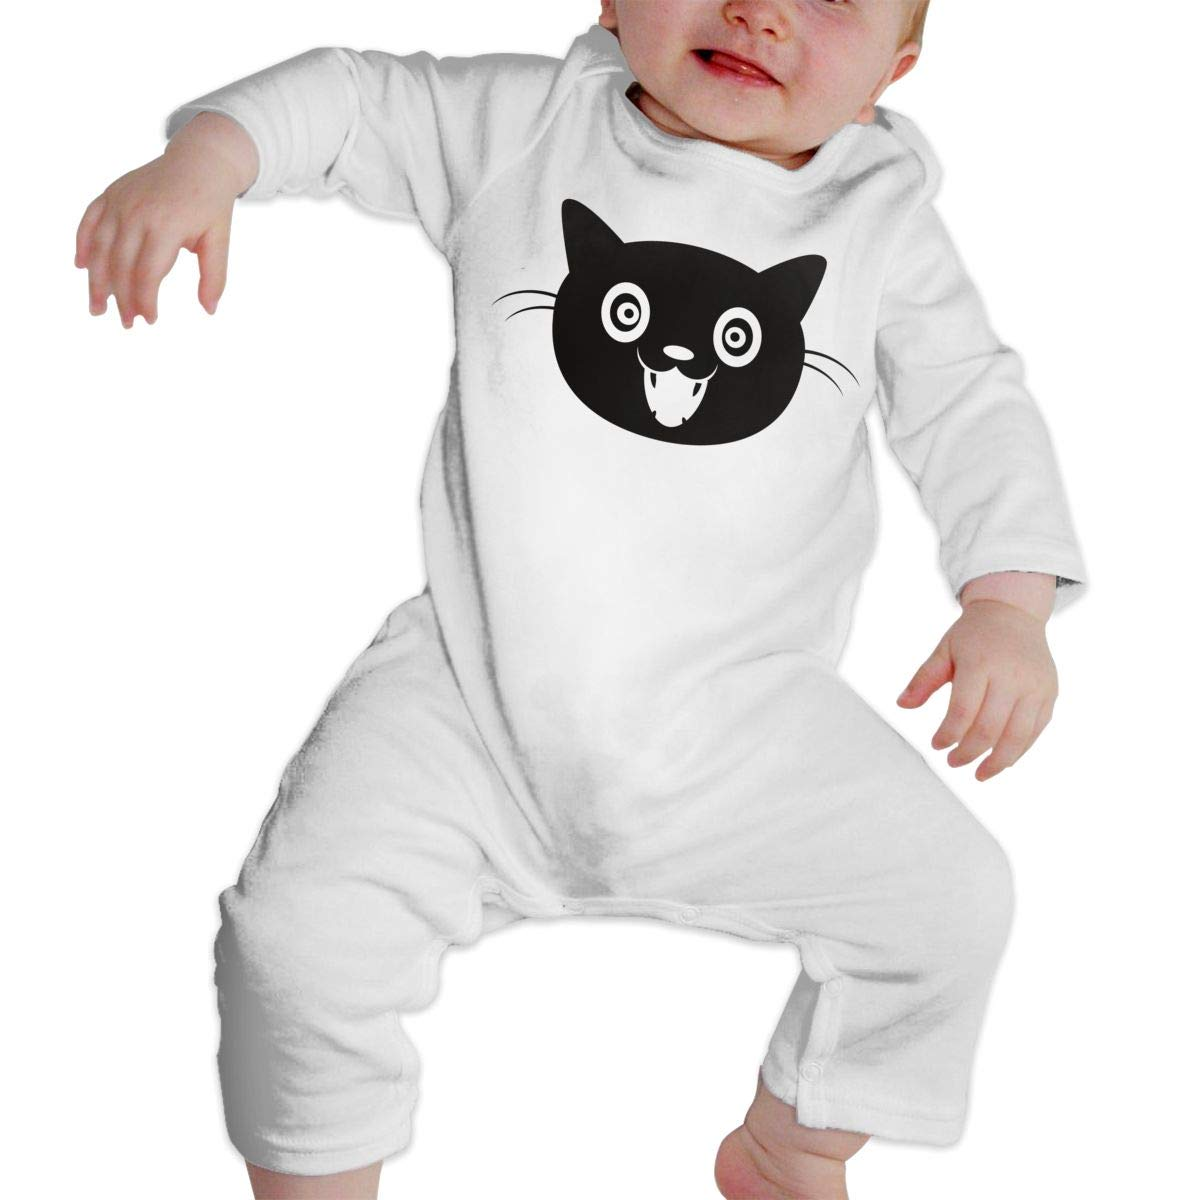 Cat/_face Unisex Long Sleeve Baby Gown Baby Bodysuit Unionsuit Footed Pajamas Romper Jumpsuit